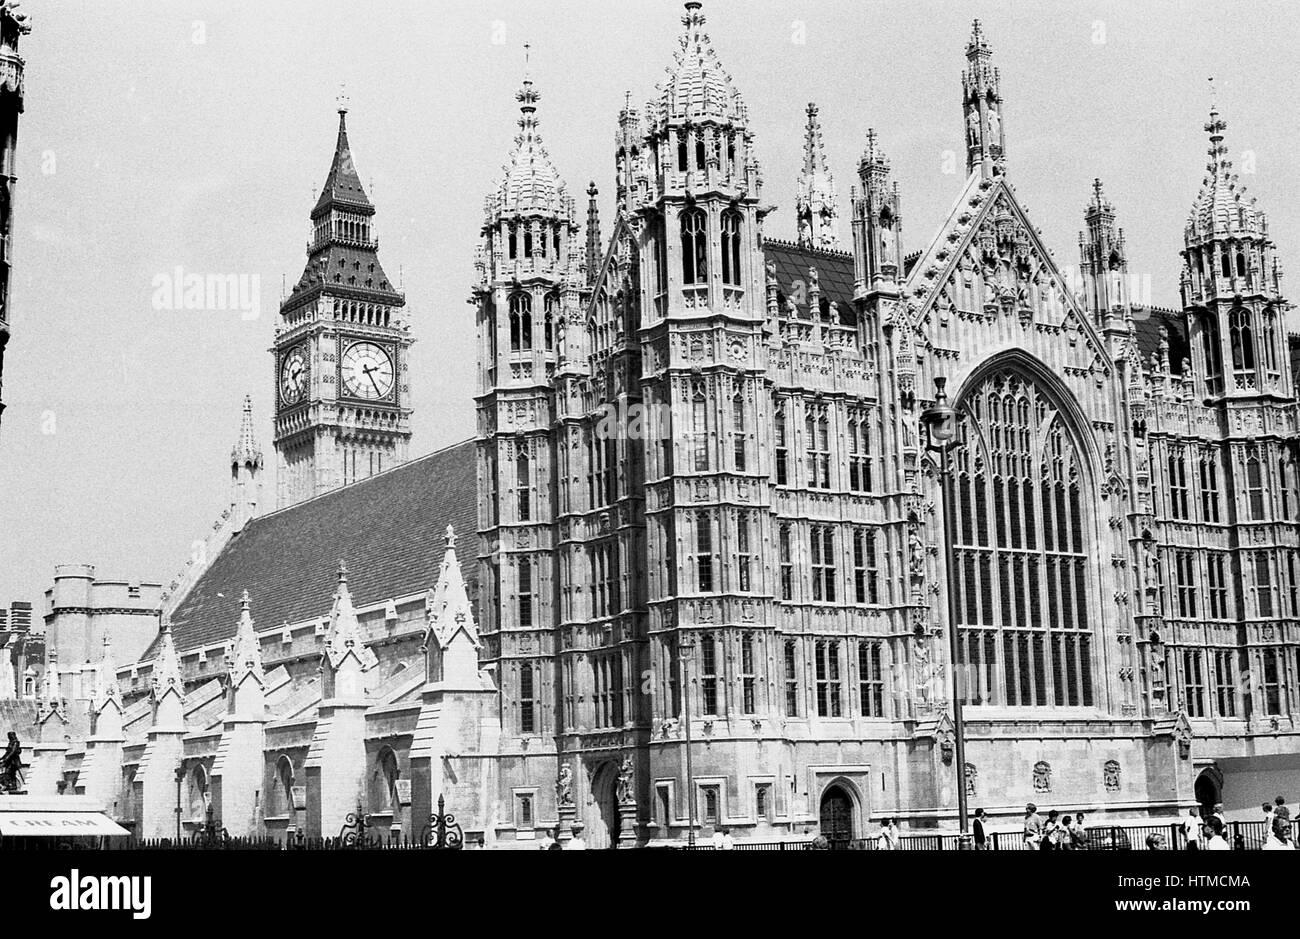 Exterior view of the Houses of Parliament at  Westminster in  London, England on August 5, 1989. - Stock Image